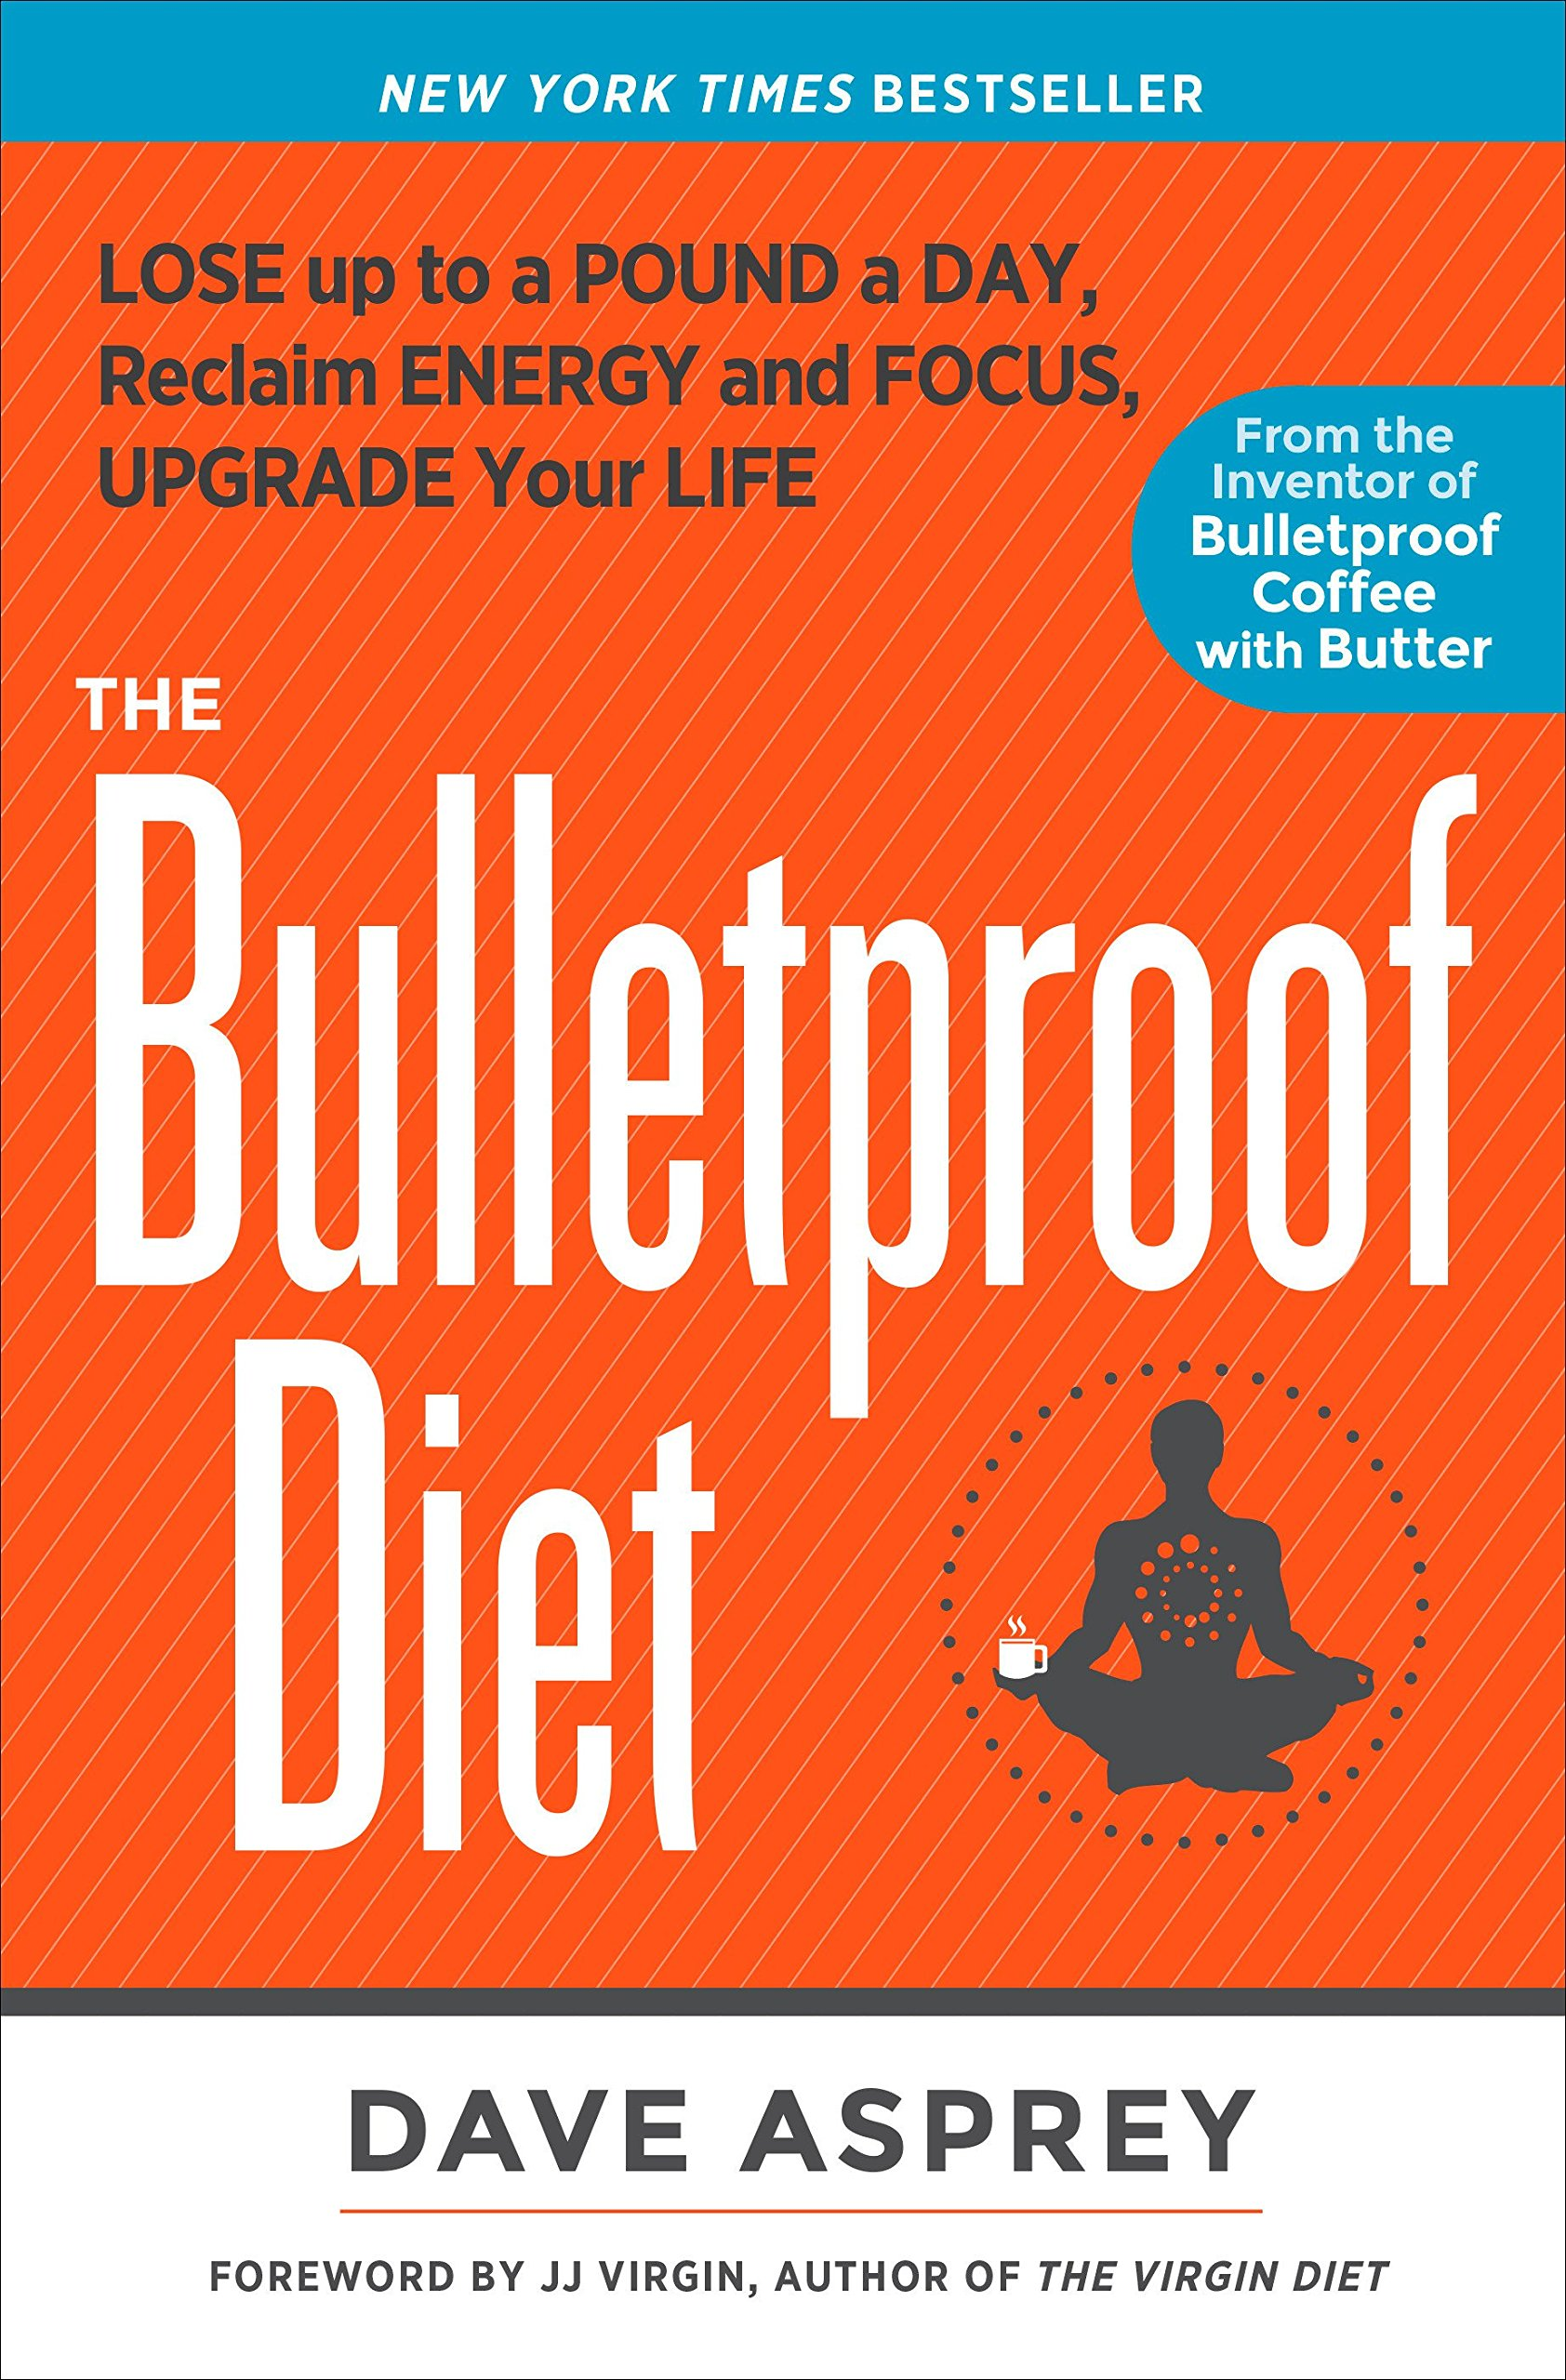 Bulletproof Diet, The